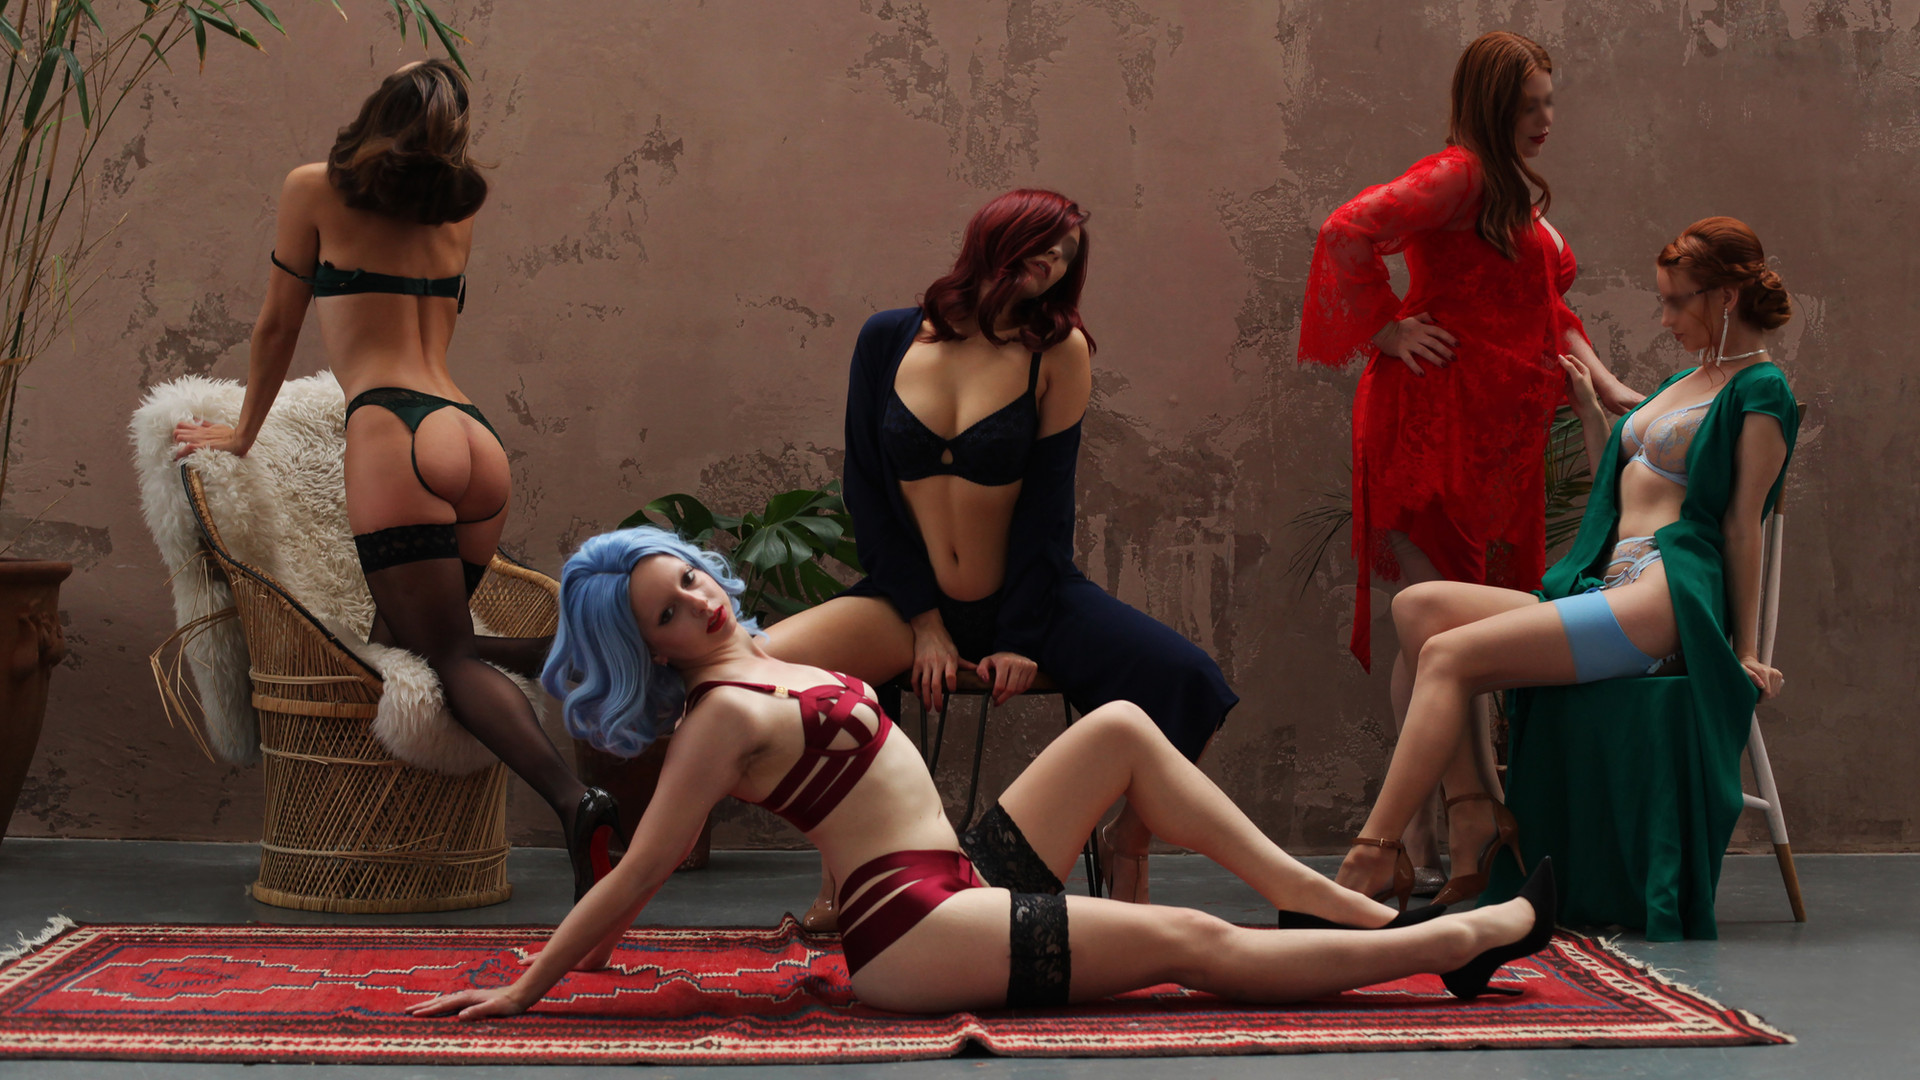 Claude Love and Kinky London Escorts Louisa Knight, Scarlett May, Annie Lilja and Pure Lily